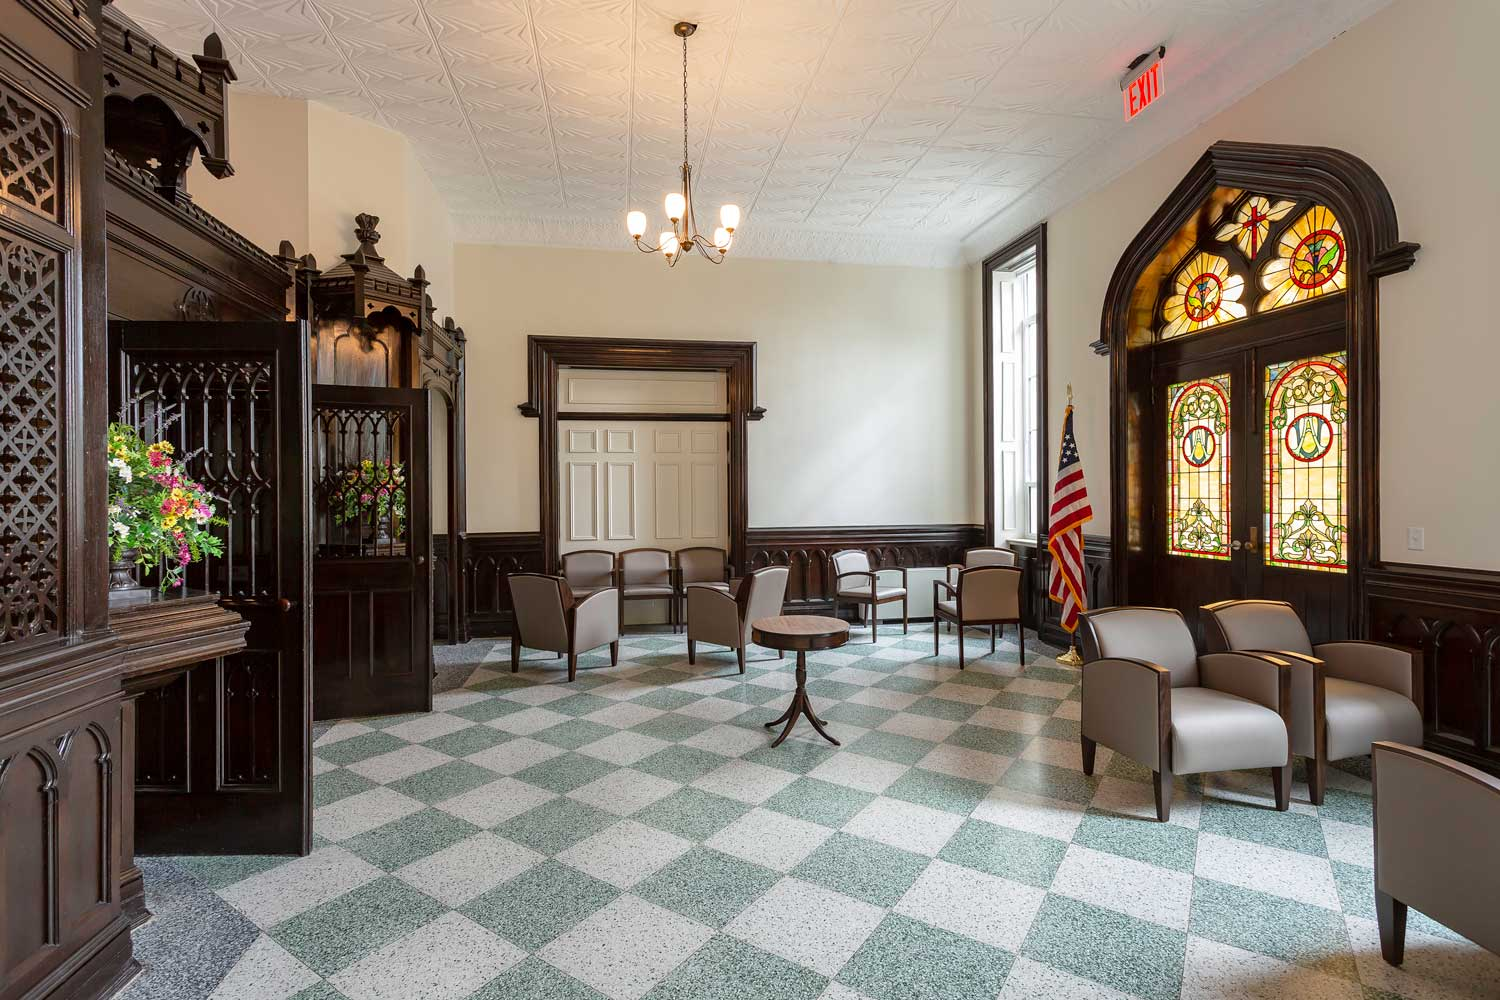 The existing turn-of-the-century convent at Serviam Heights Senior Apartments was adaptively reused